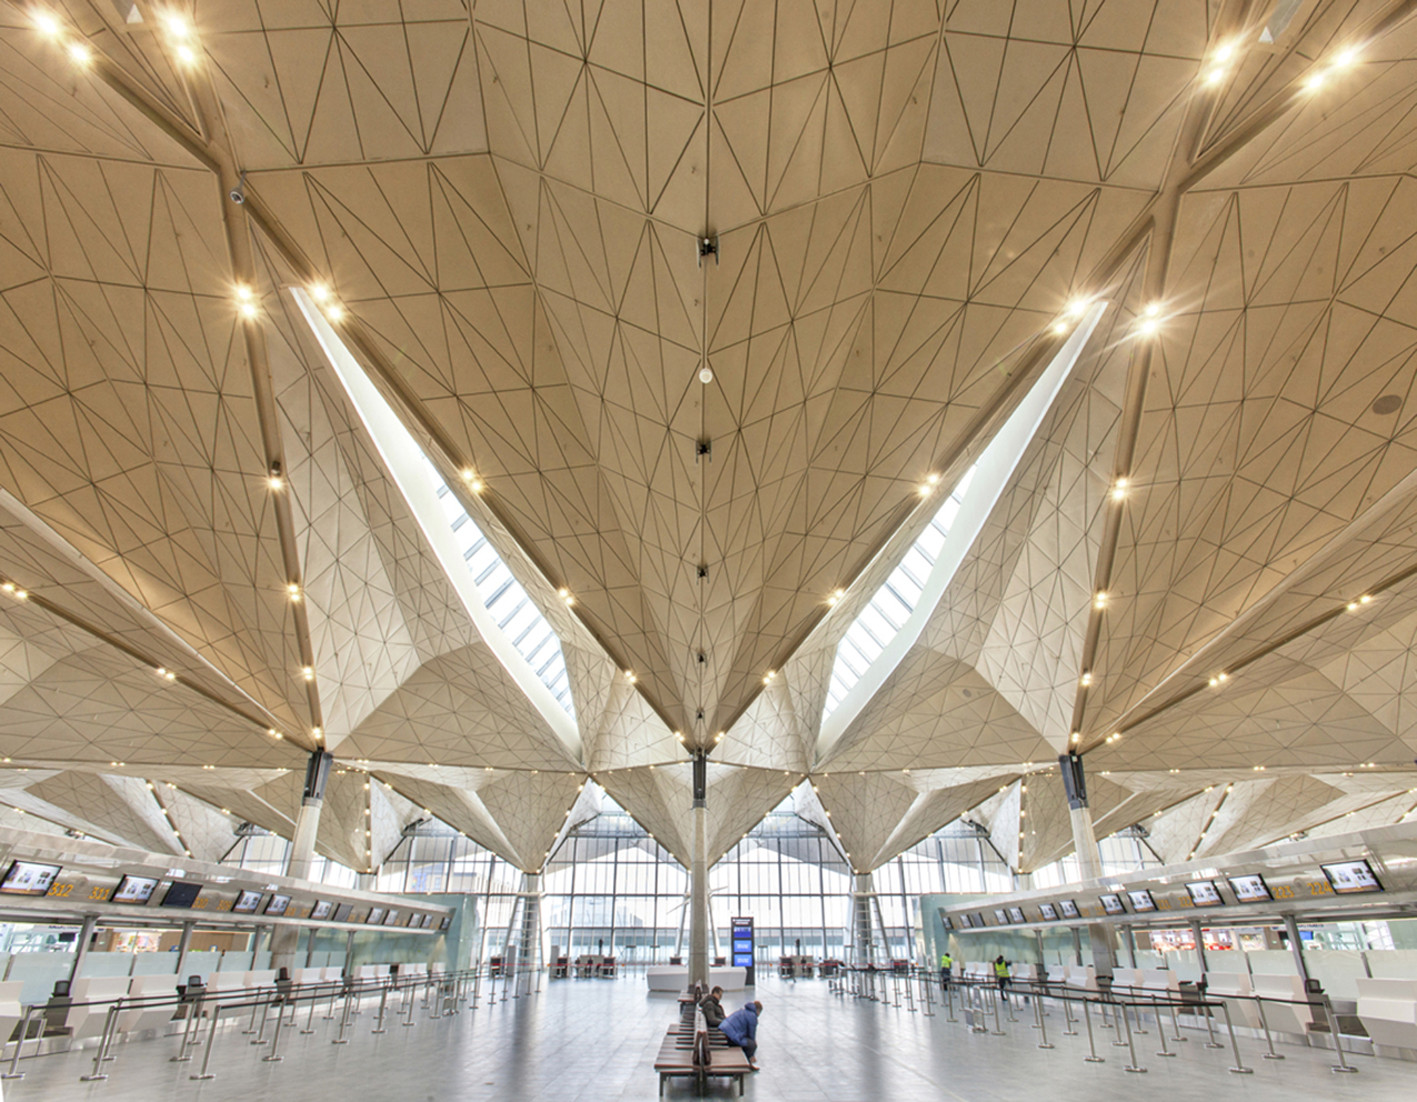 pulkovo international airport grimshaw architects